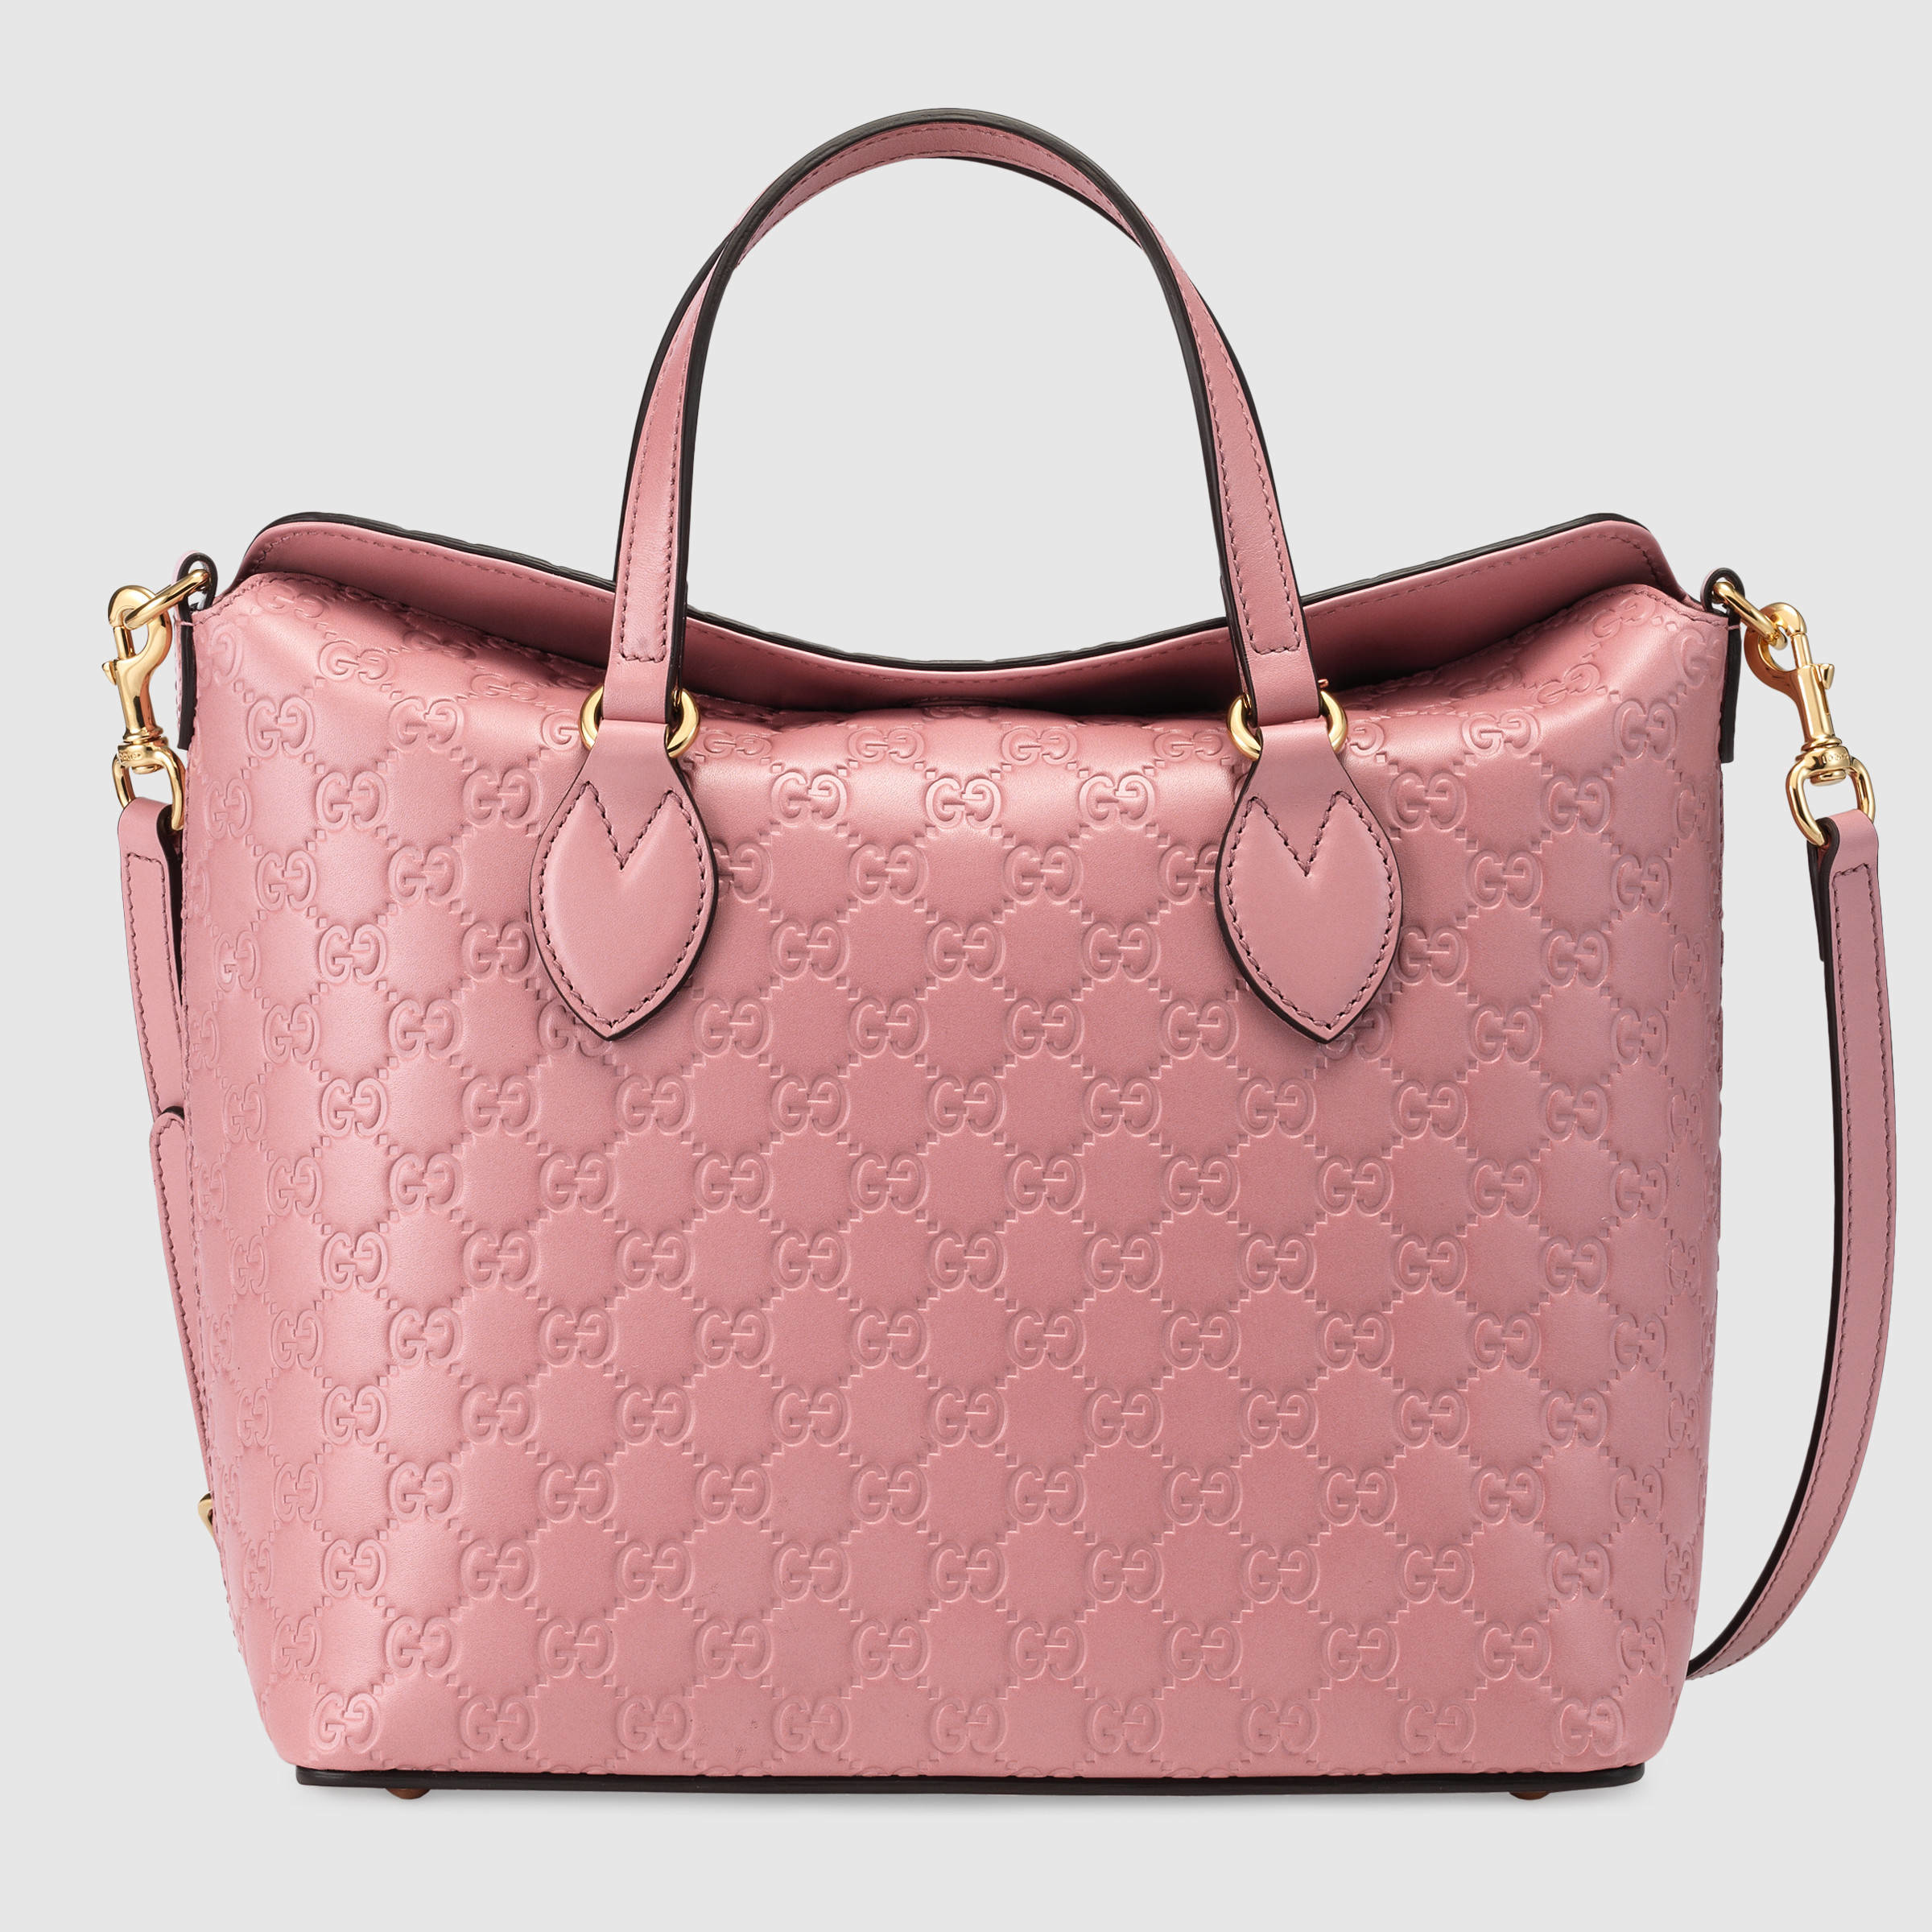 Gucci Signature Leather Top Handle Bag in Pink | Lyst